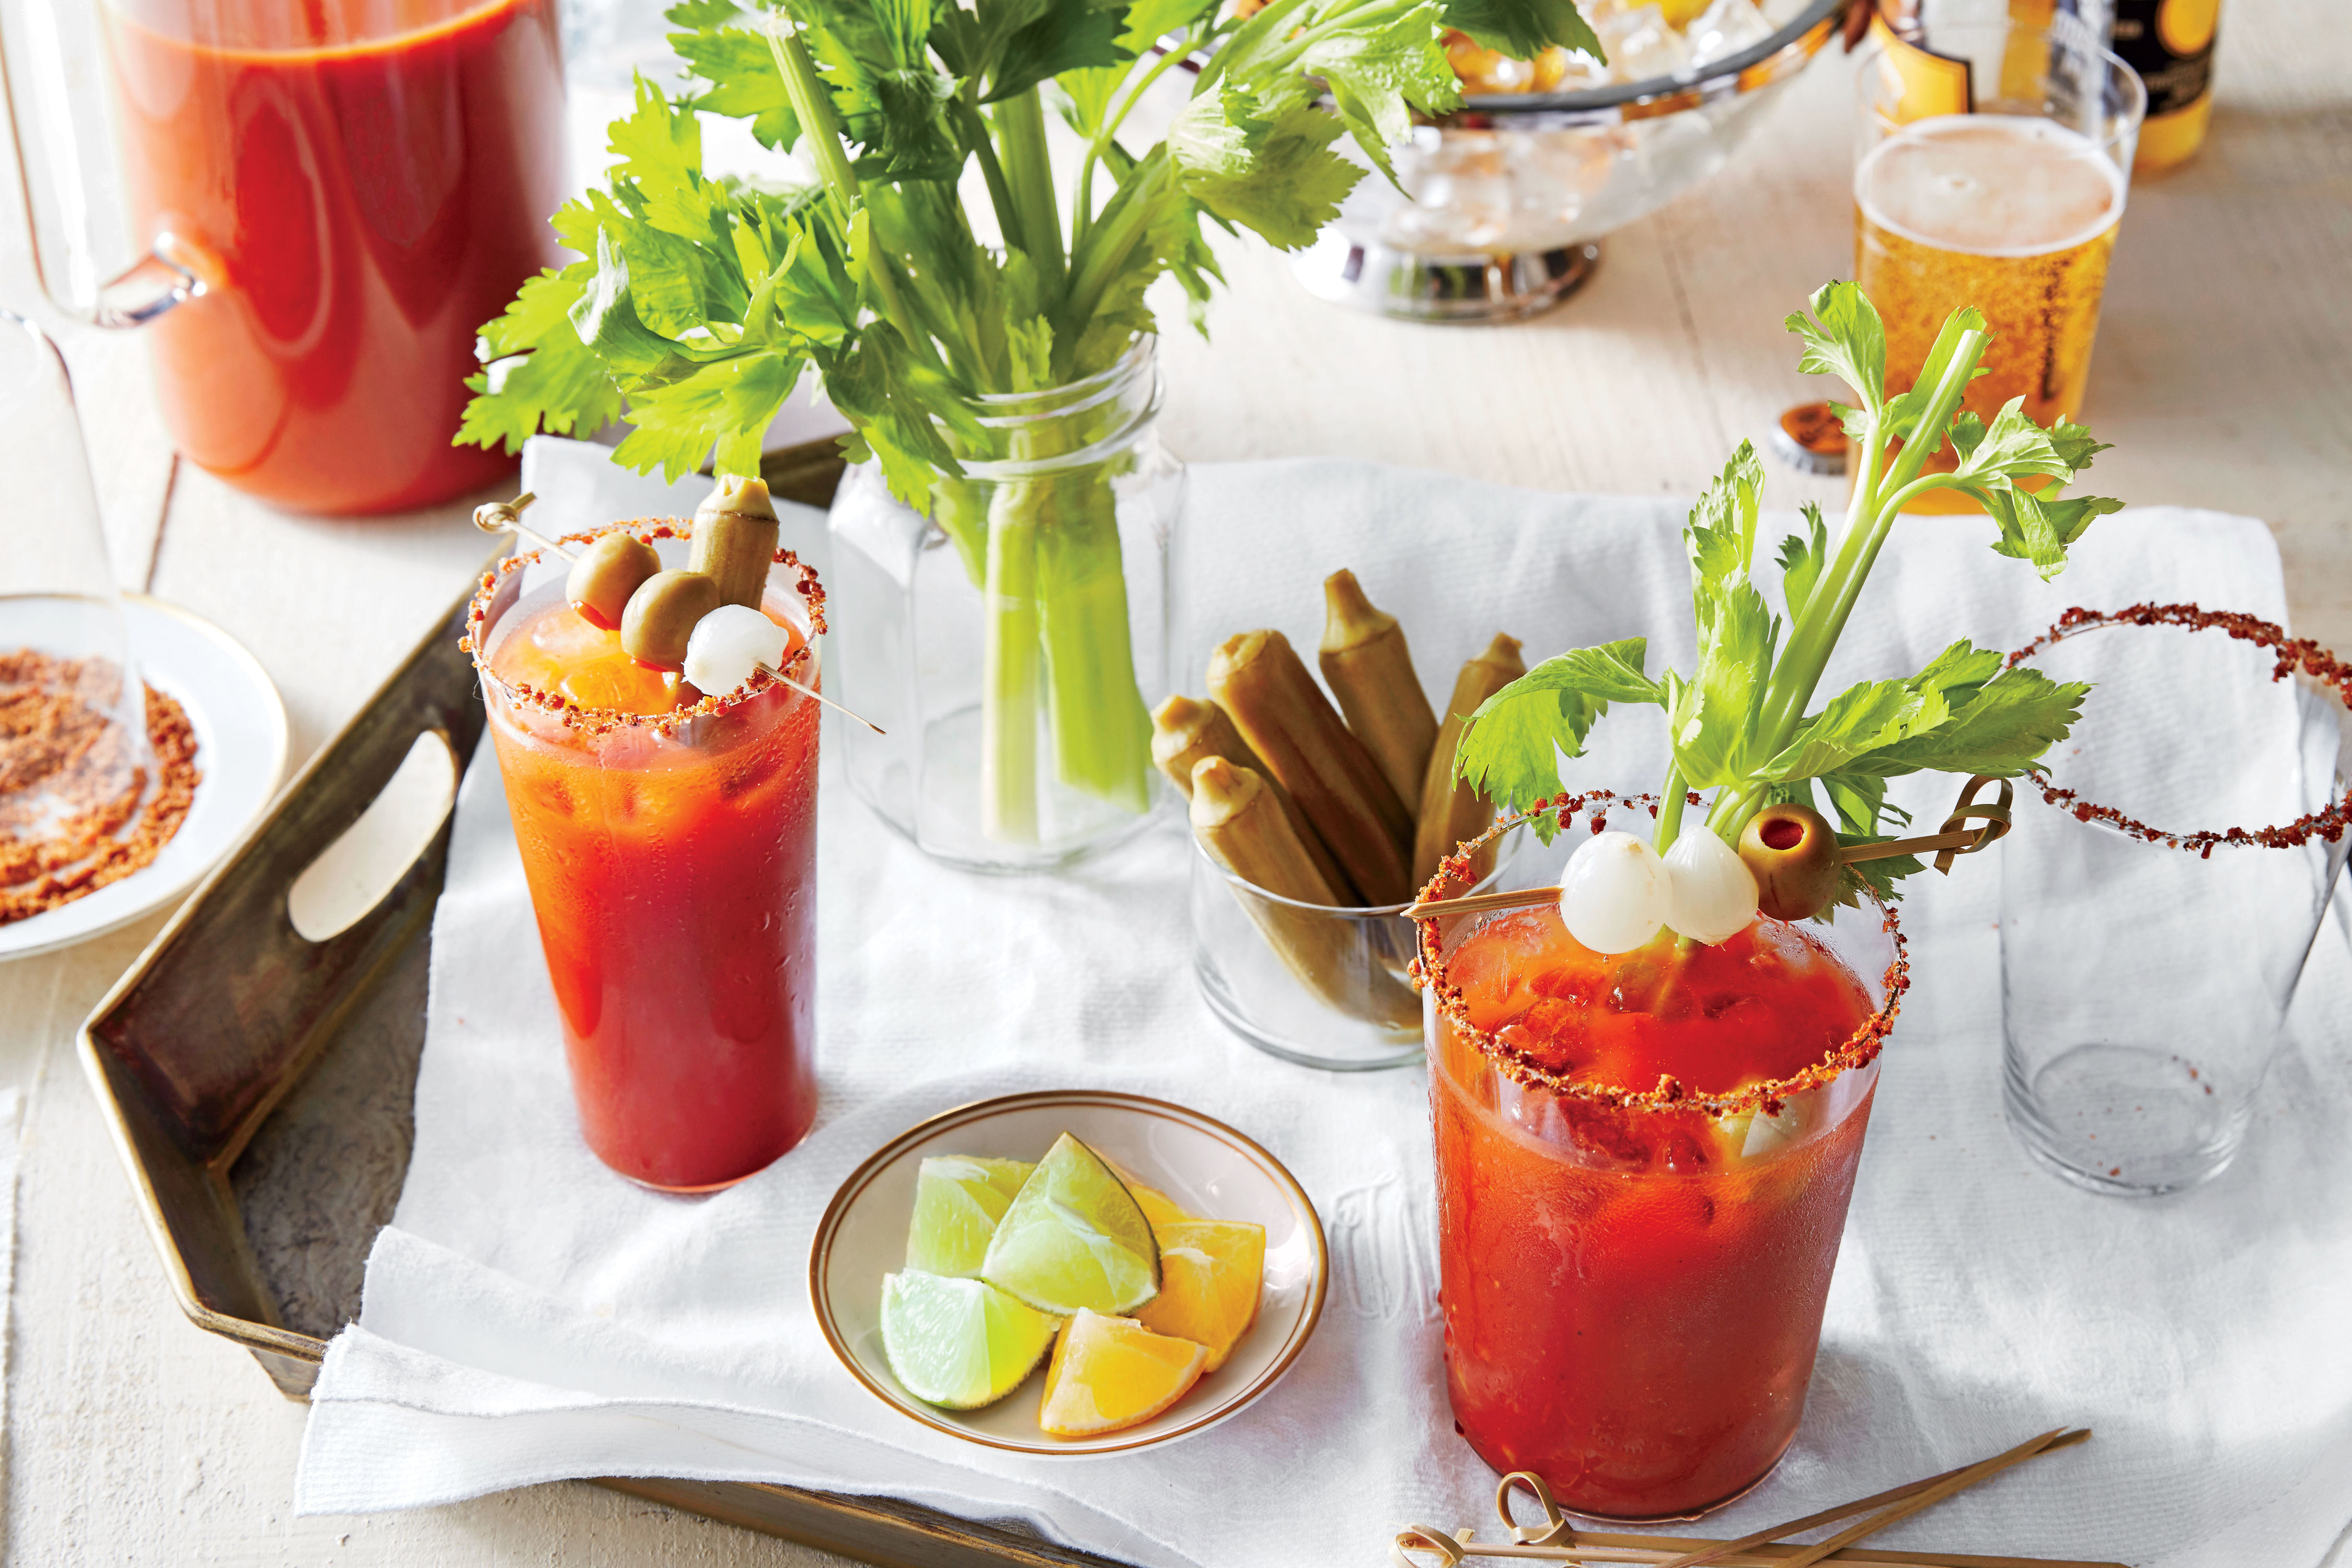 Here's How To Build Your Own Bloody Mary Bar